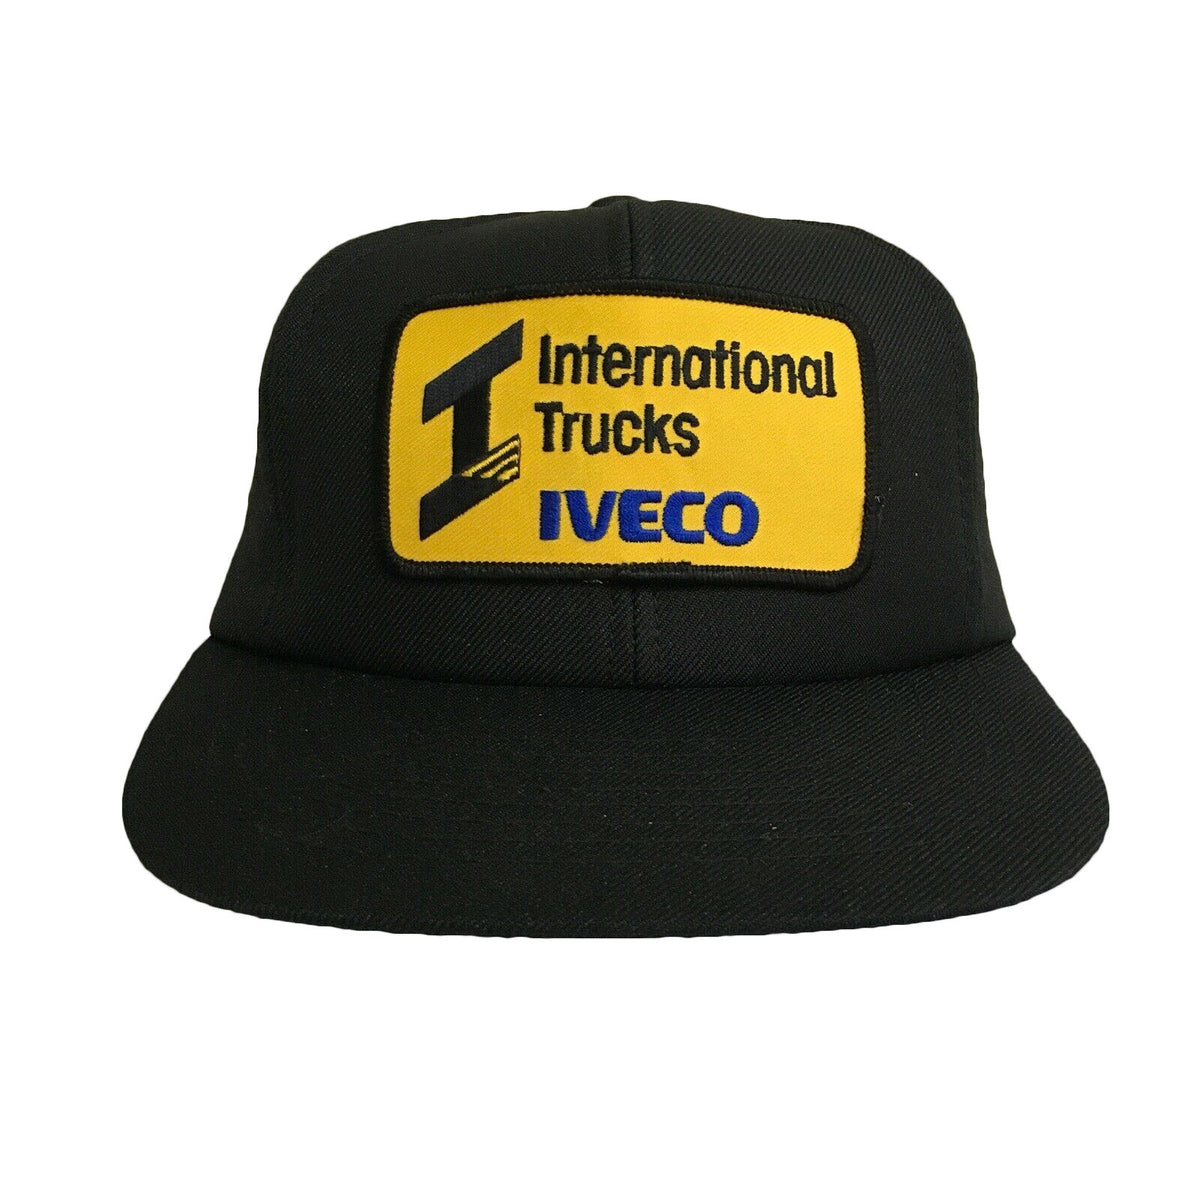 International Trucks 90's Vintage Trucker Snapback Cap